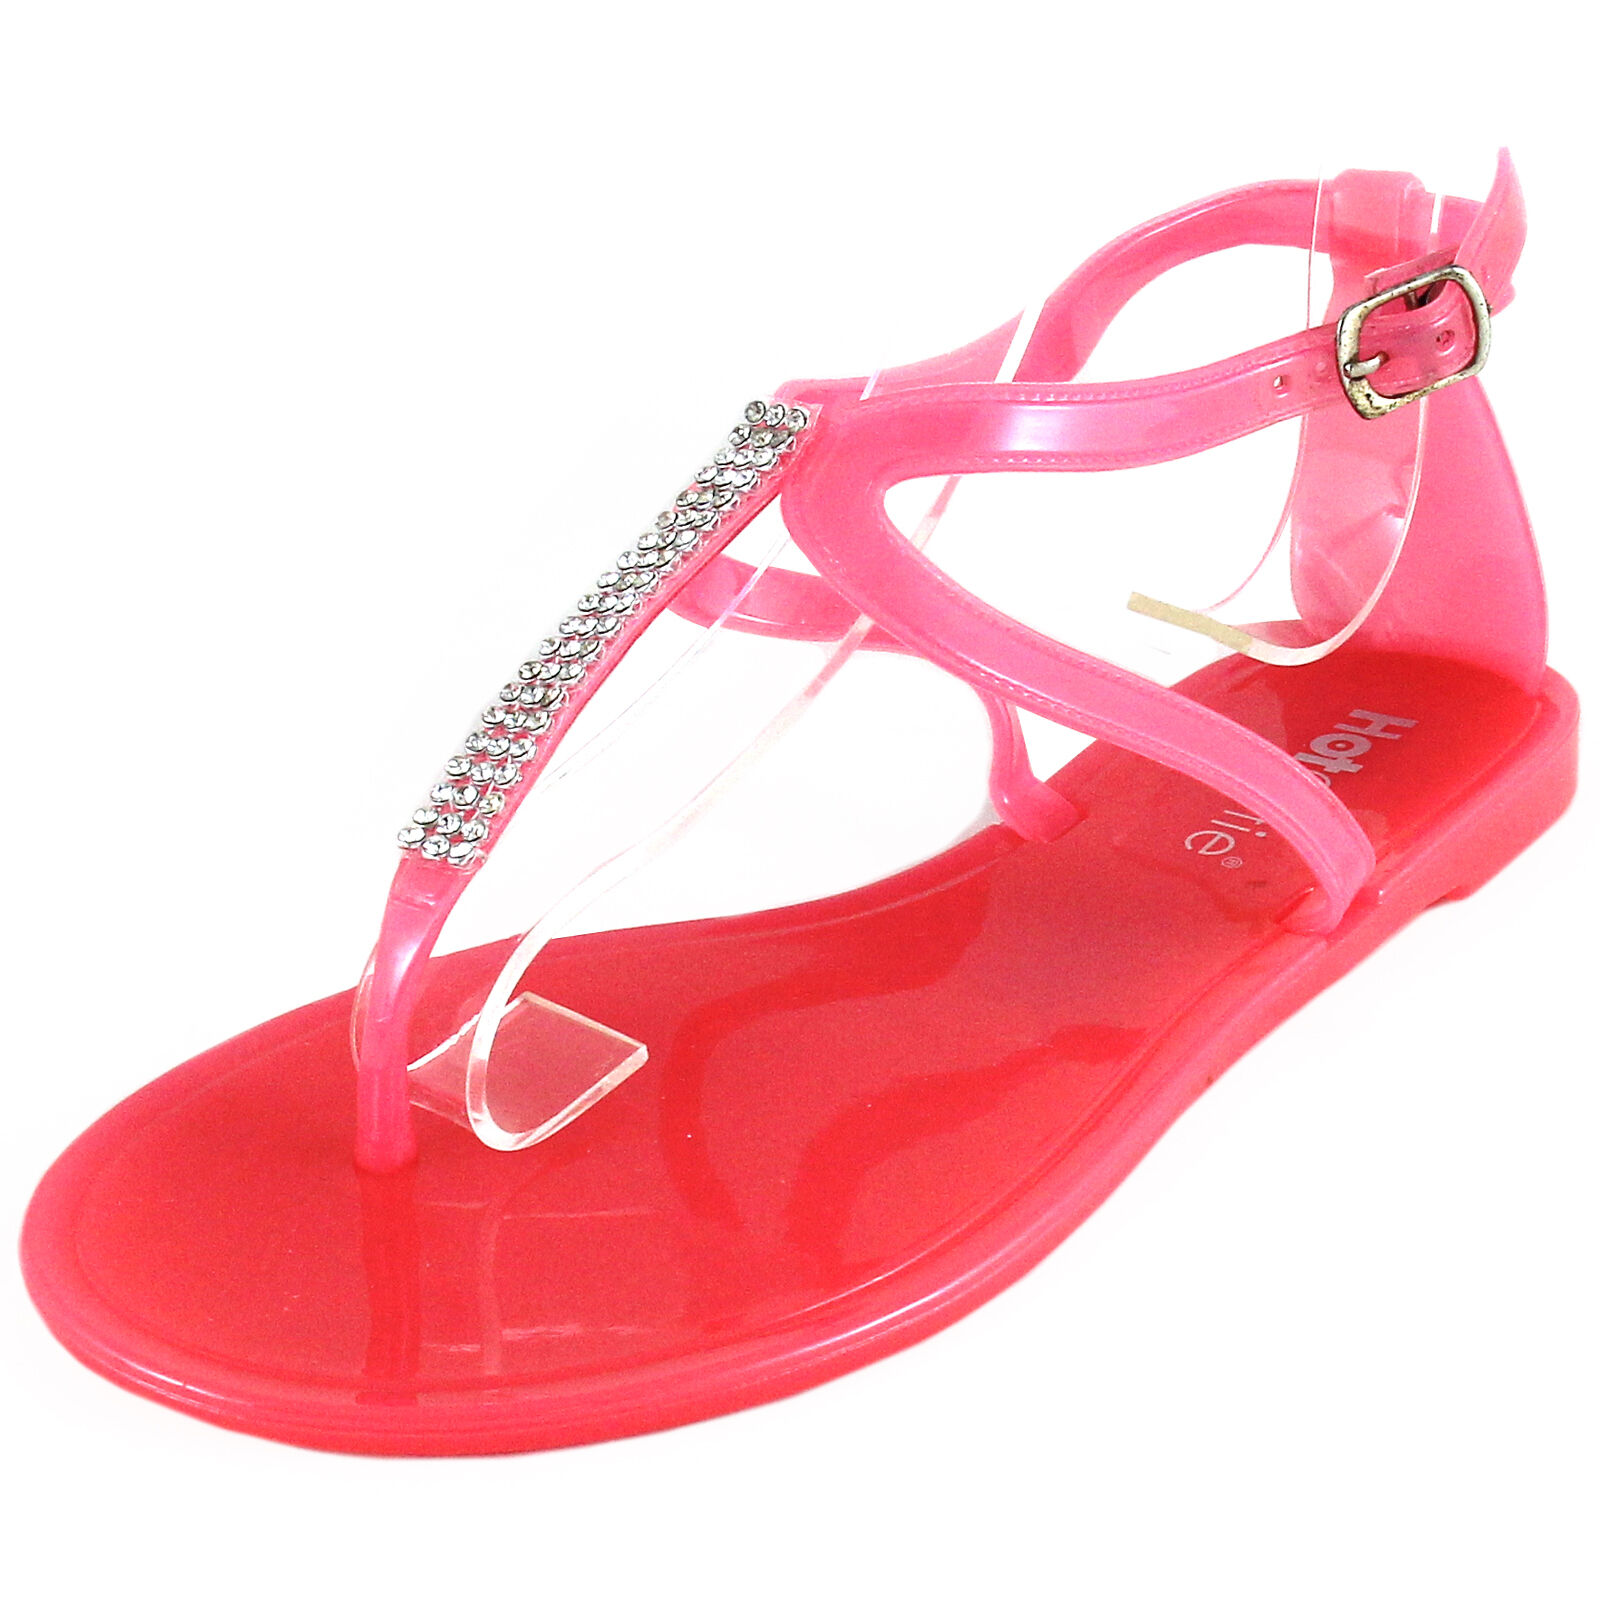 New sandals women's shoes fashion jelly sandals New t strap open toe casual summer coral e114be